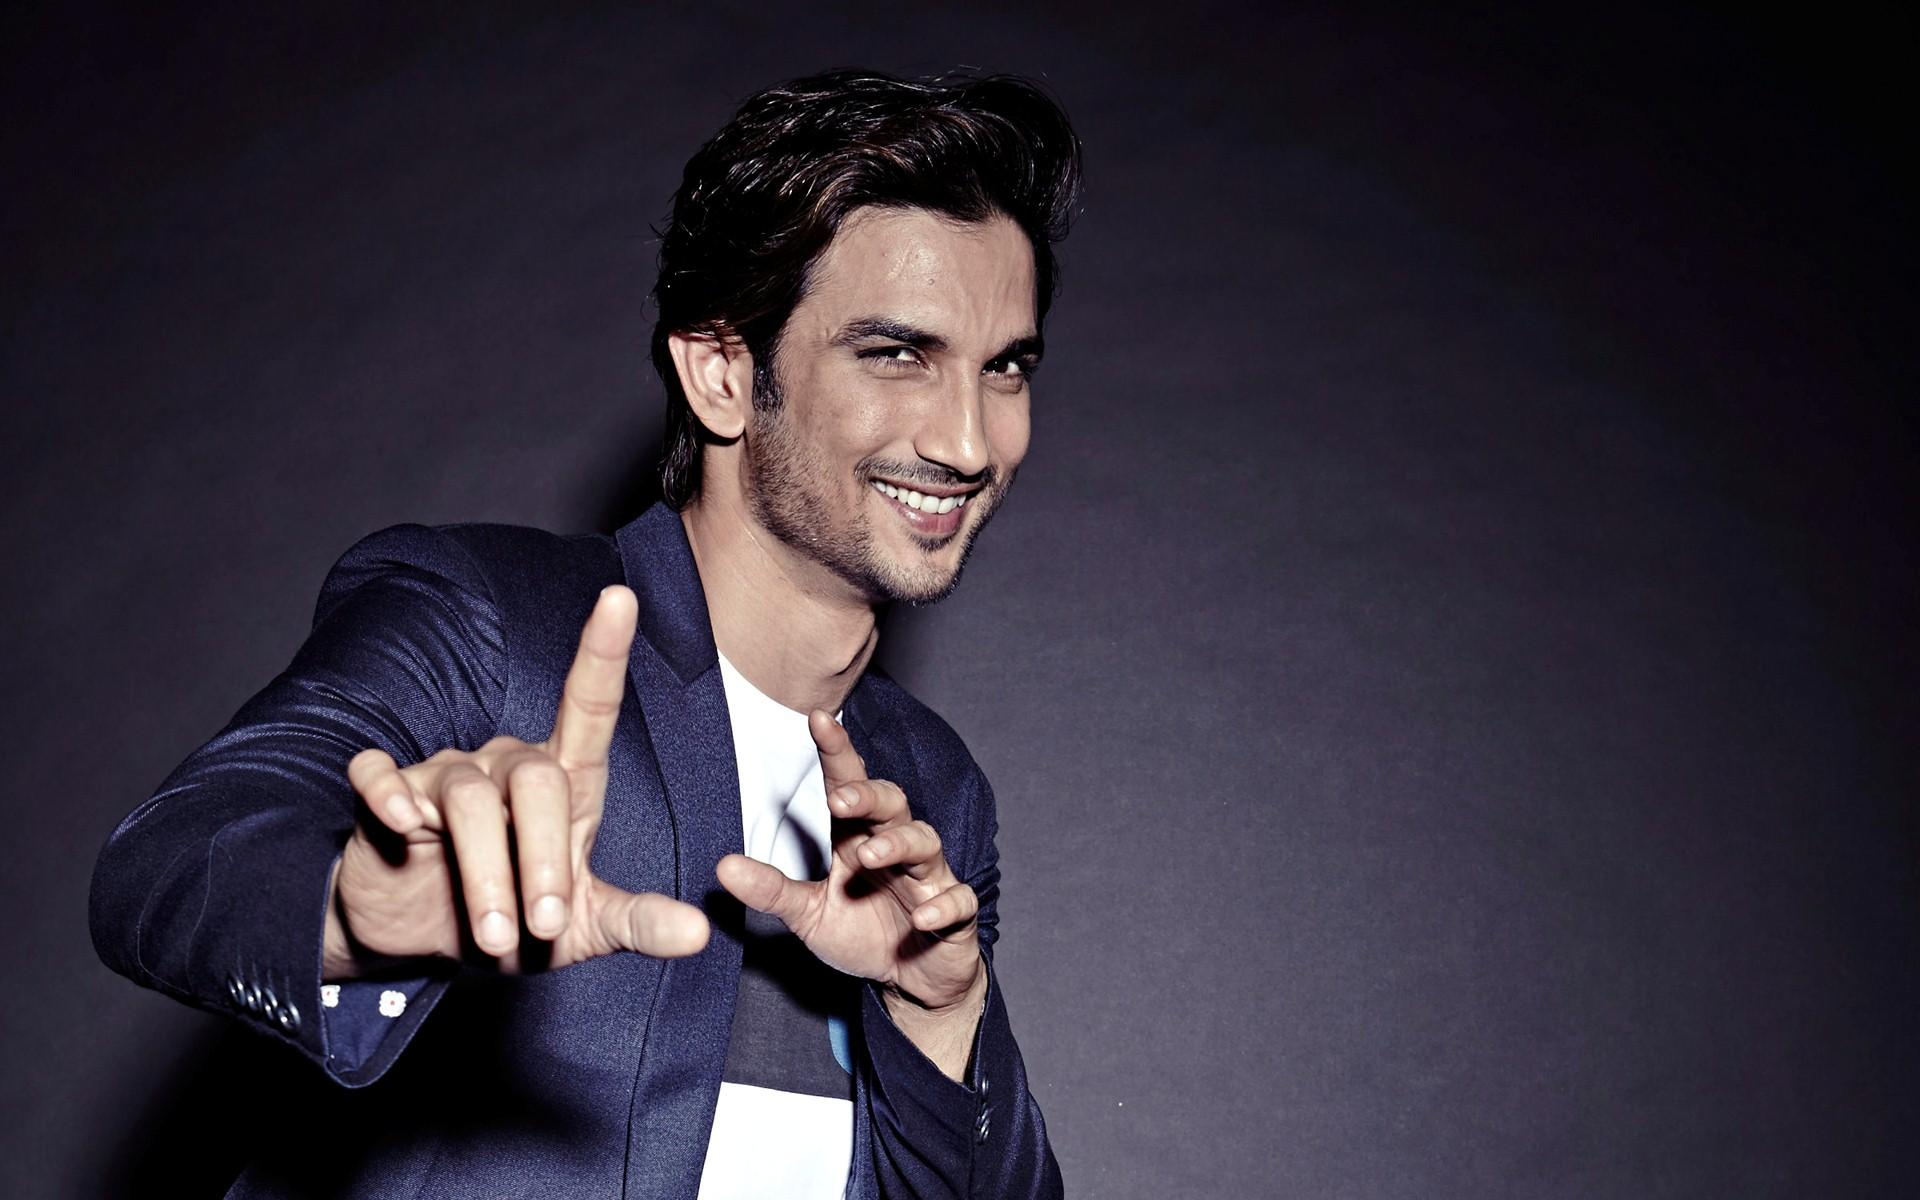 Why Sushant Singh Rajput was a dreamer and what message his life gives to all youngsters